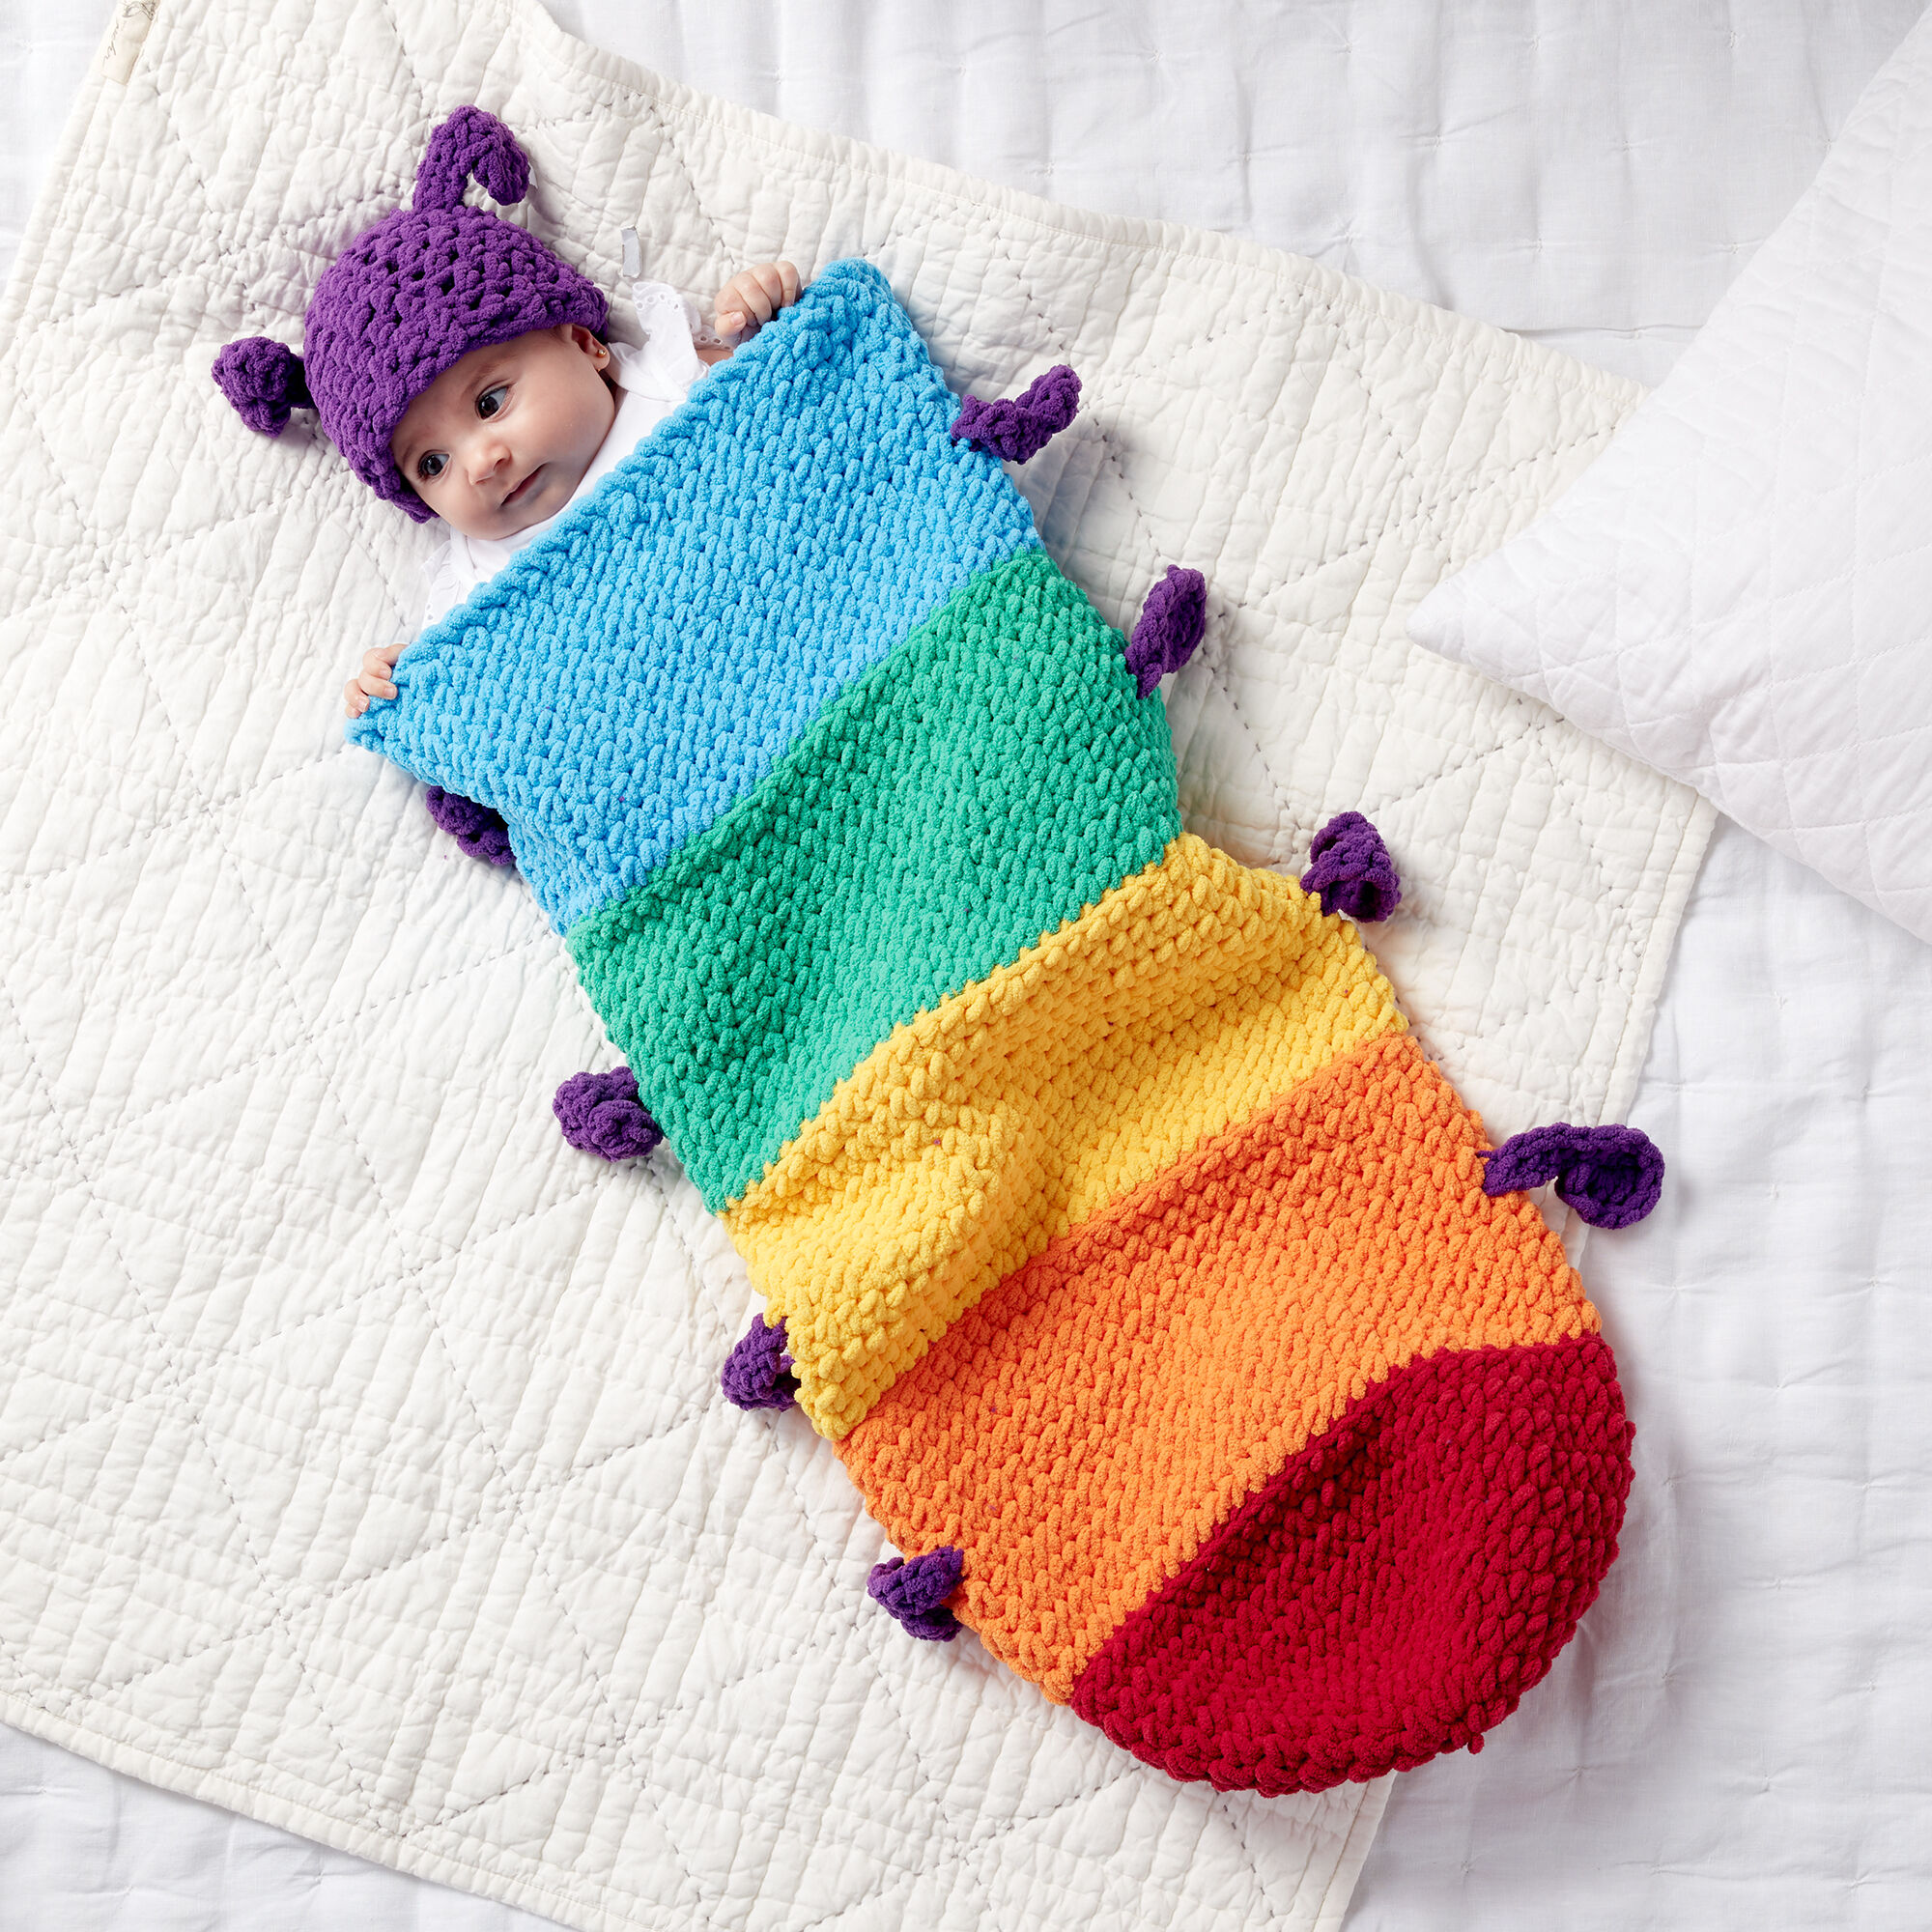 Free Crochet Snuggle Sack Caterpillar pattern for baby